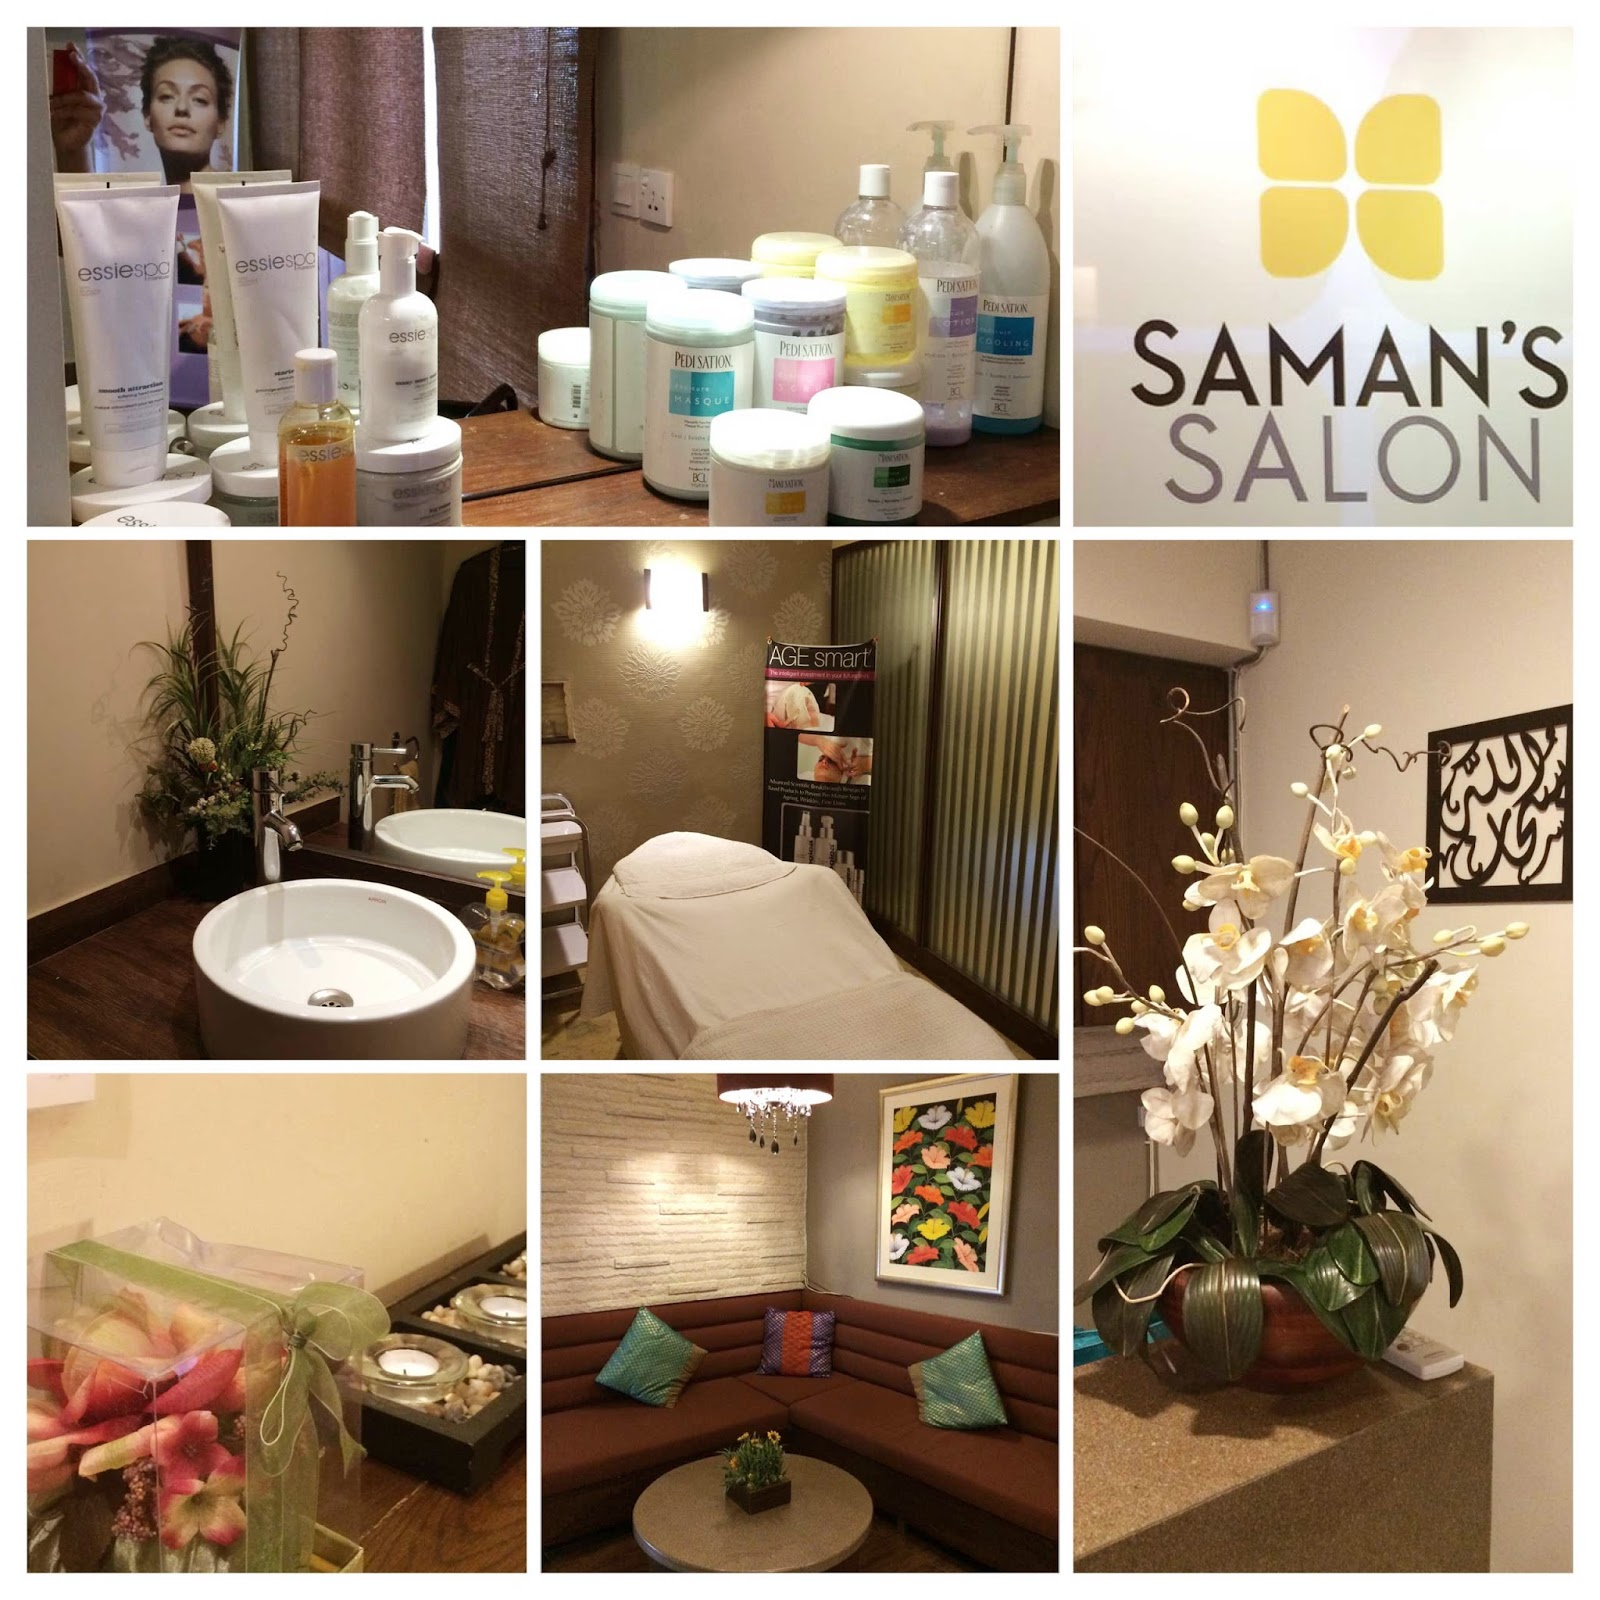 Saman's Salon Clifton